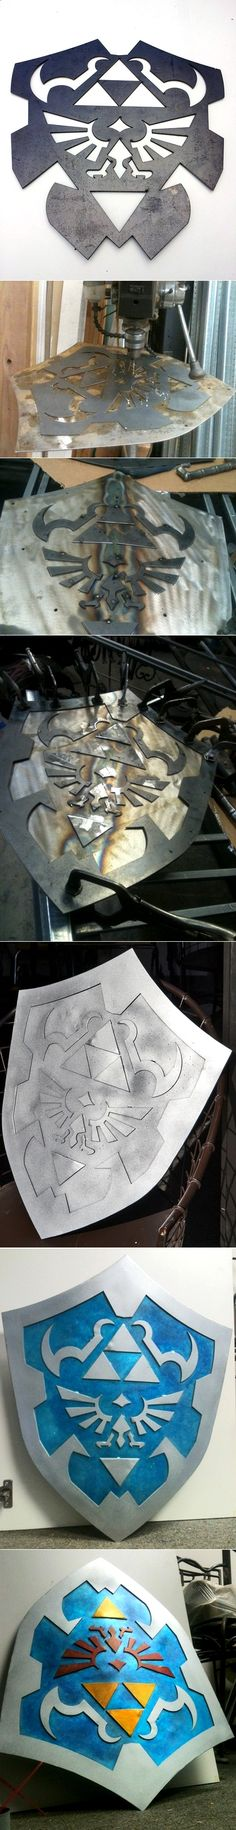 The process of making Link's hylian shield from Zelda : Ocarina of Time by manhattanphd and via @L a guarida geek - #DIY cosplay prop.